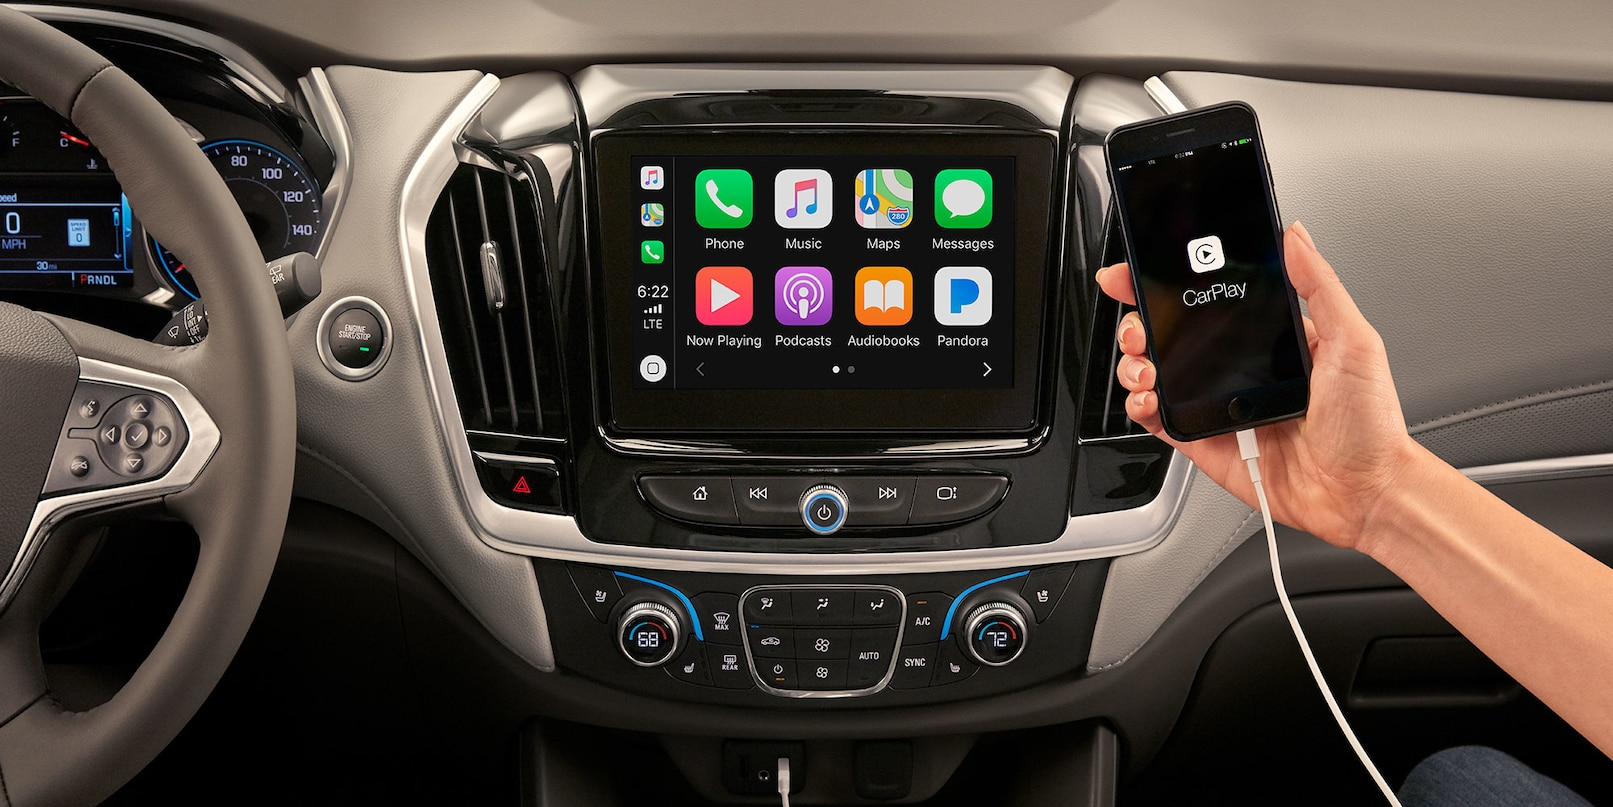 Engaging Features in the Chevy Traverse